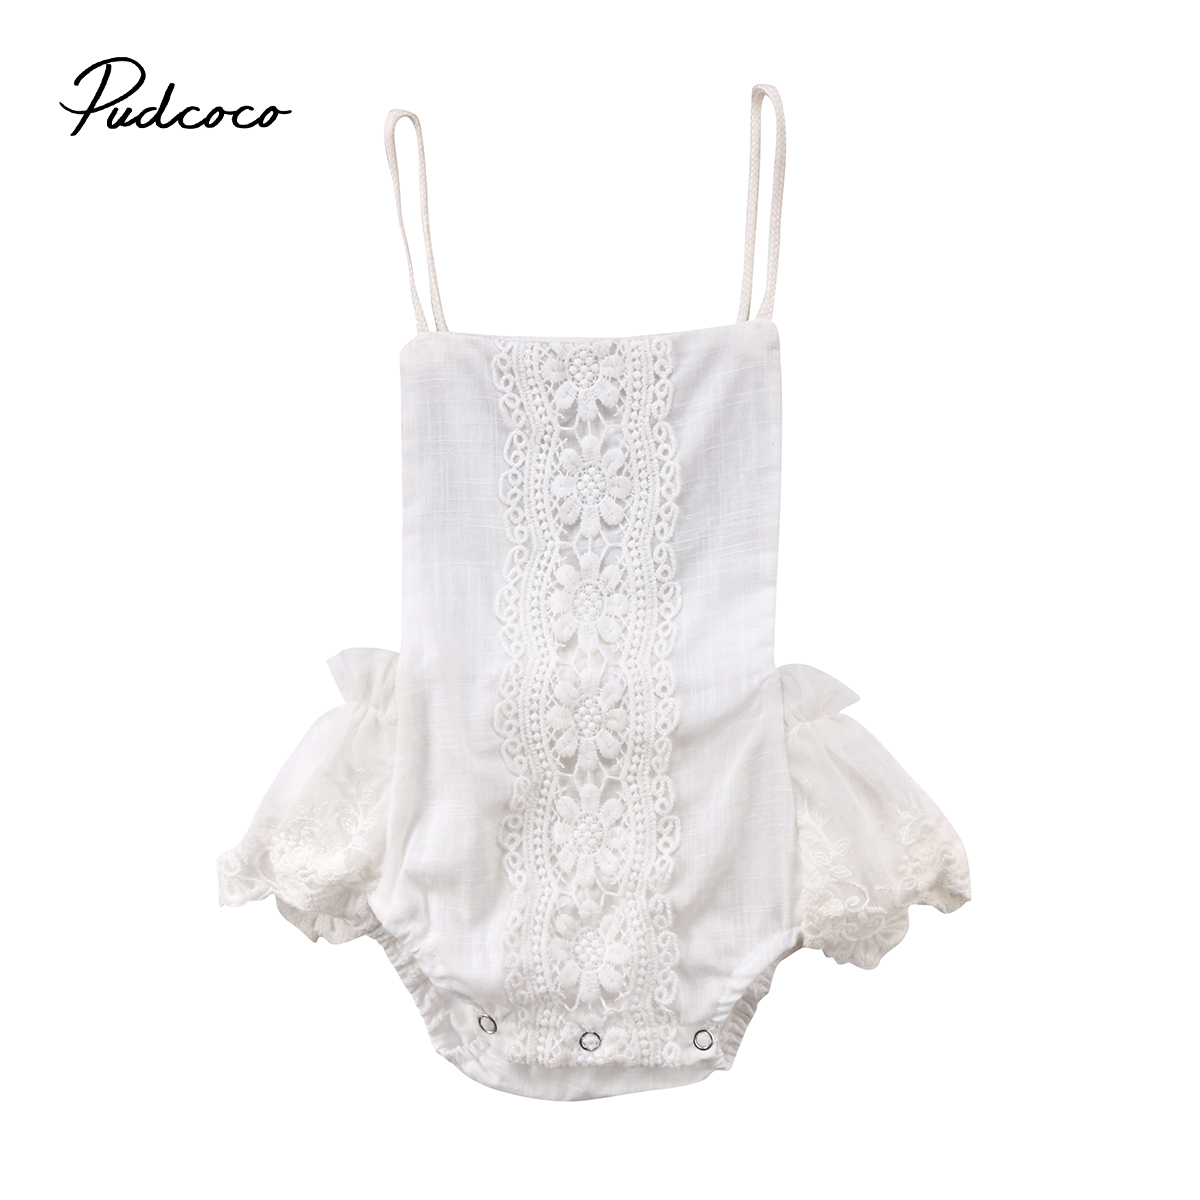 Pudcoco Newborn Baby Girls Clothes Girls Lace Ruffle Romper Playsuit Backless Sunsuit Outfits White white sleeveless mesh and lace overlay details playsuit